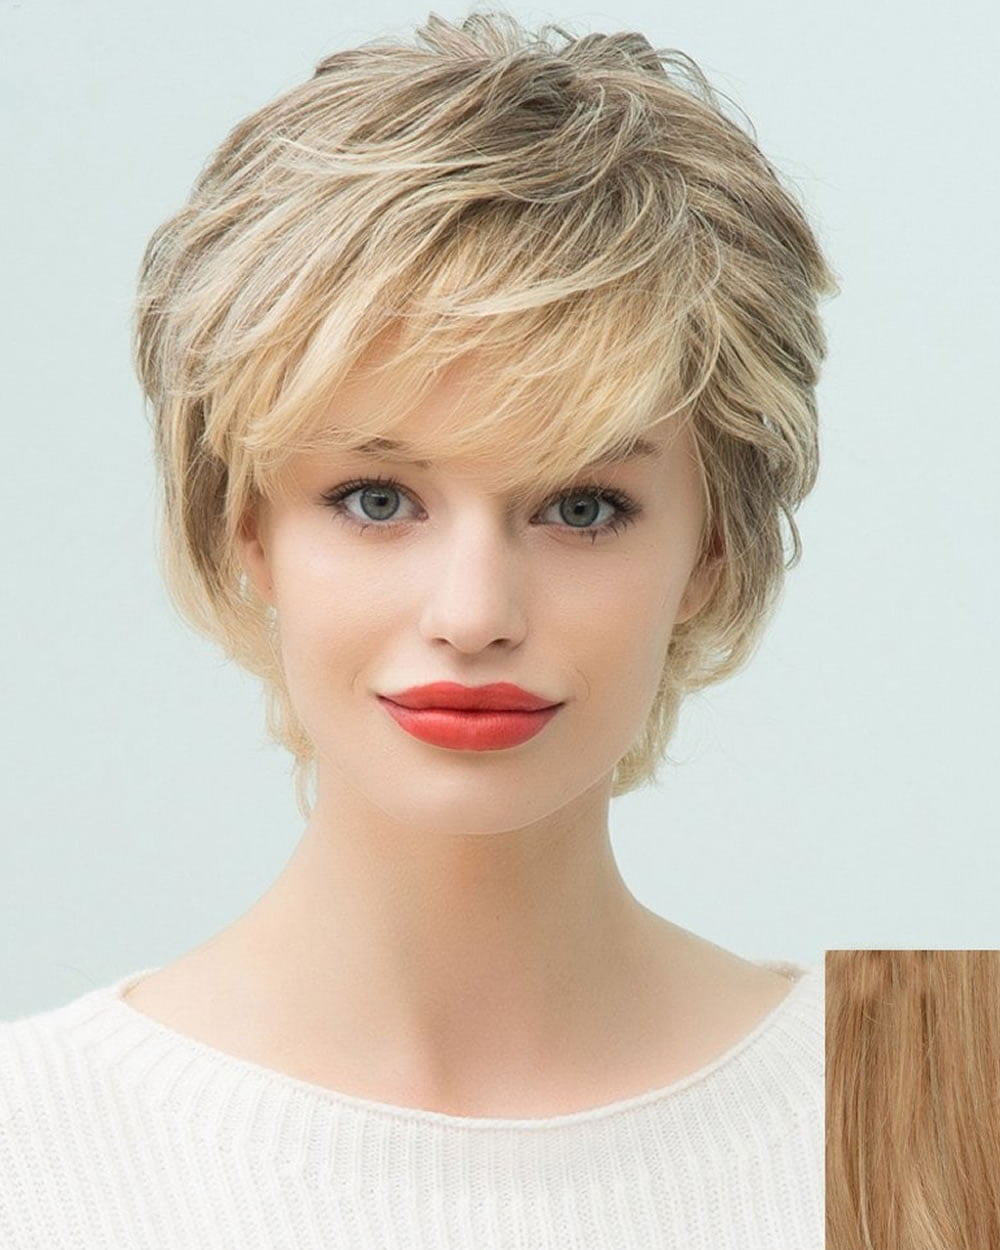 25 Top Very Short Hair Ideas Amp Short Bob Pixie Hairstyles